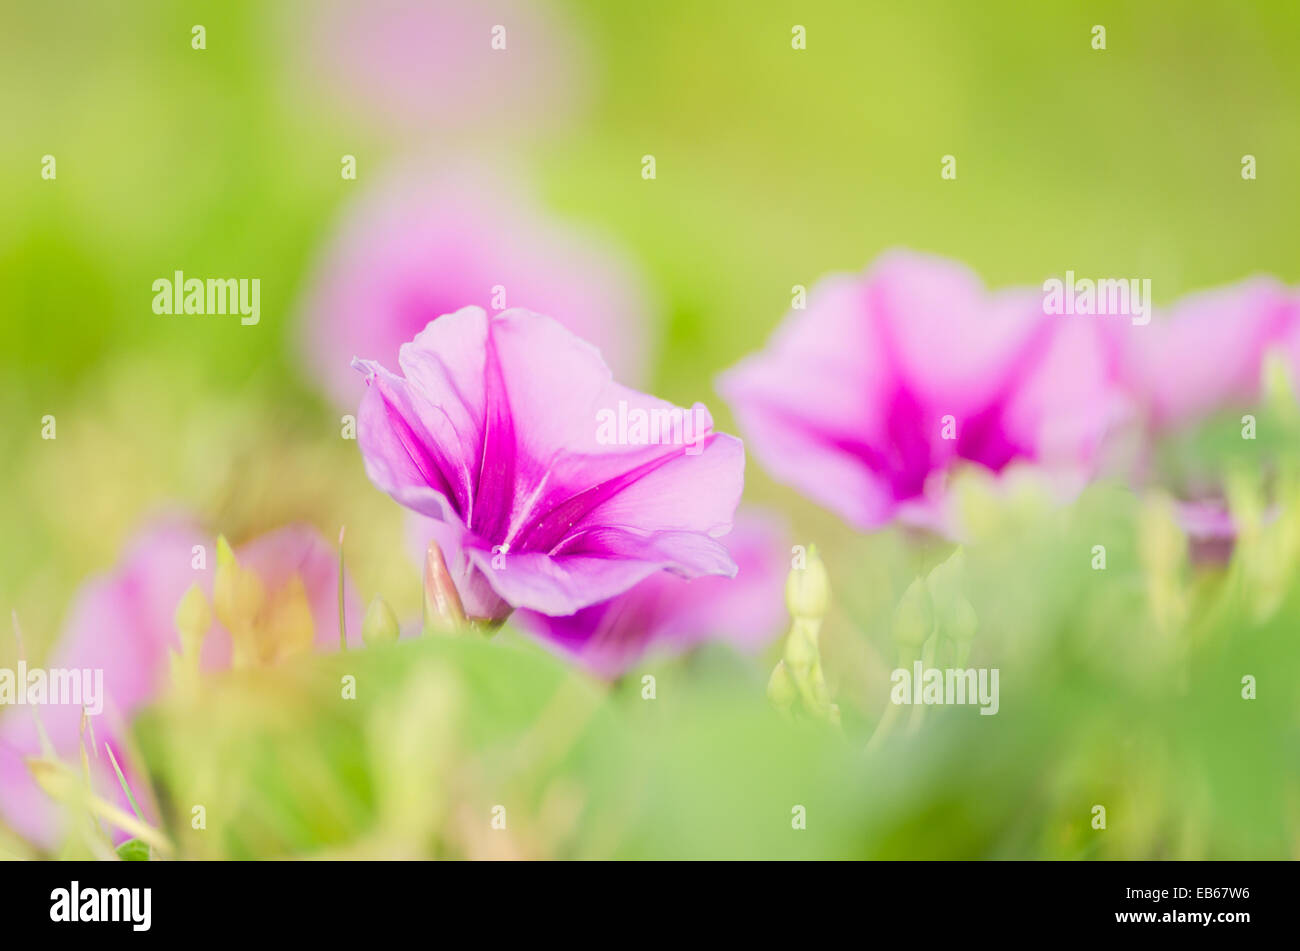 Morning glory or Convolvulaceae flowers or Bindweed Family in the nature or the garden - Stock Image